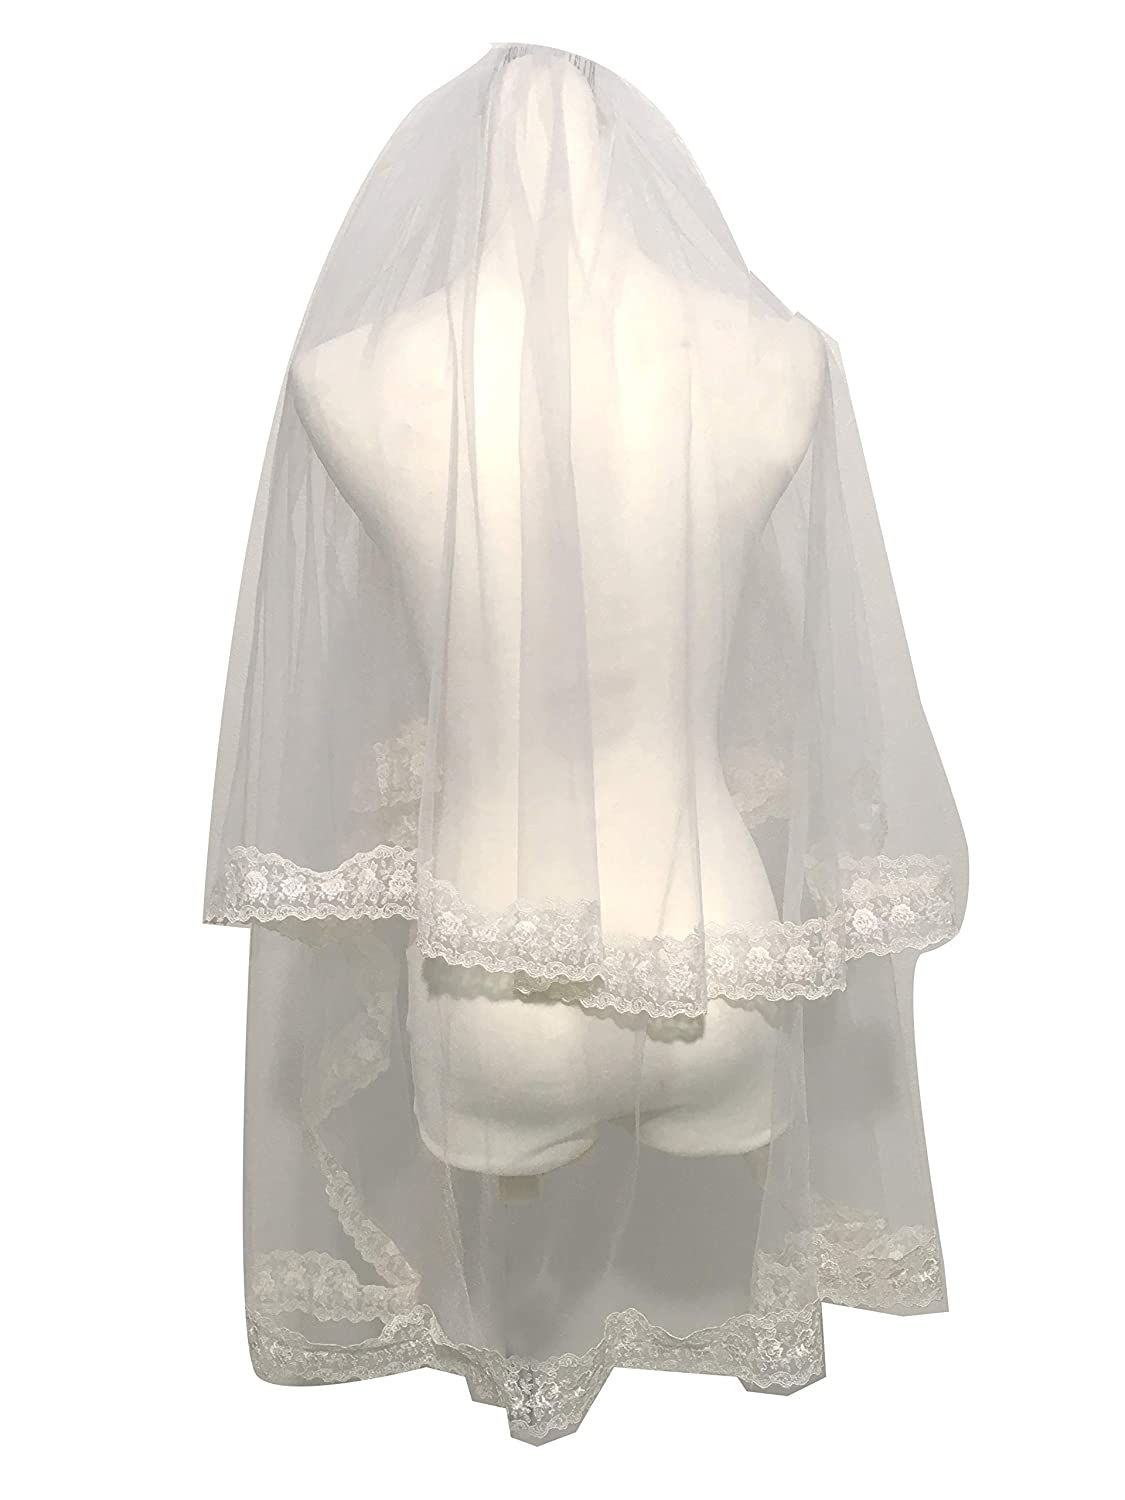 Past Elbow 2 Layers Bridal Veil with lace on The Edge Diamond White